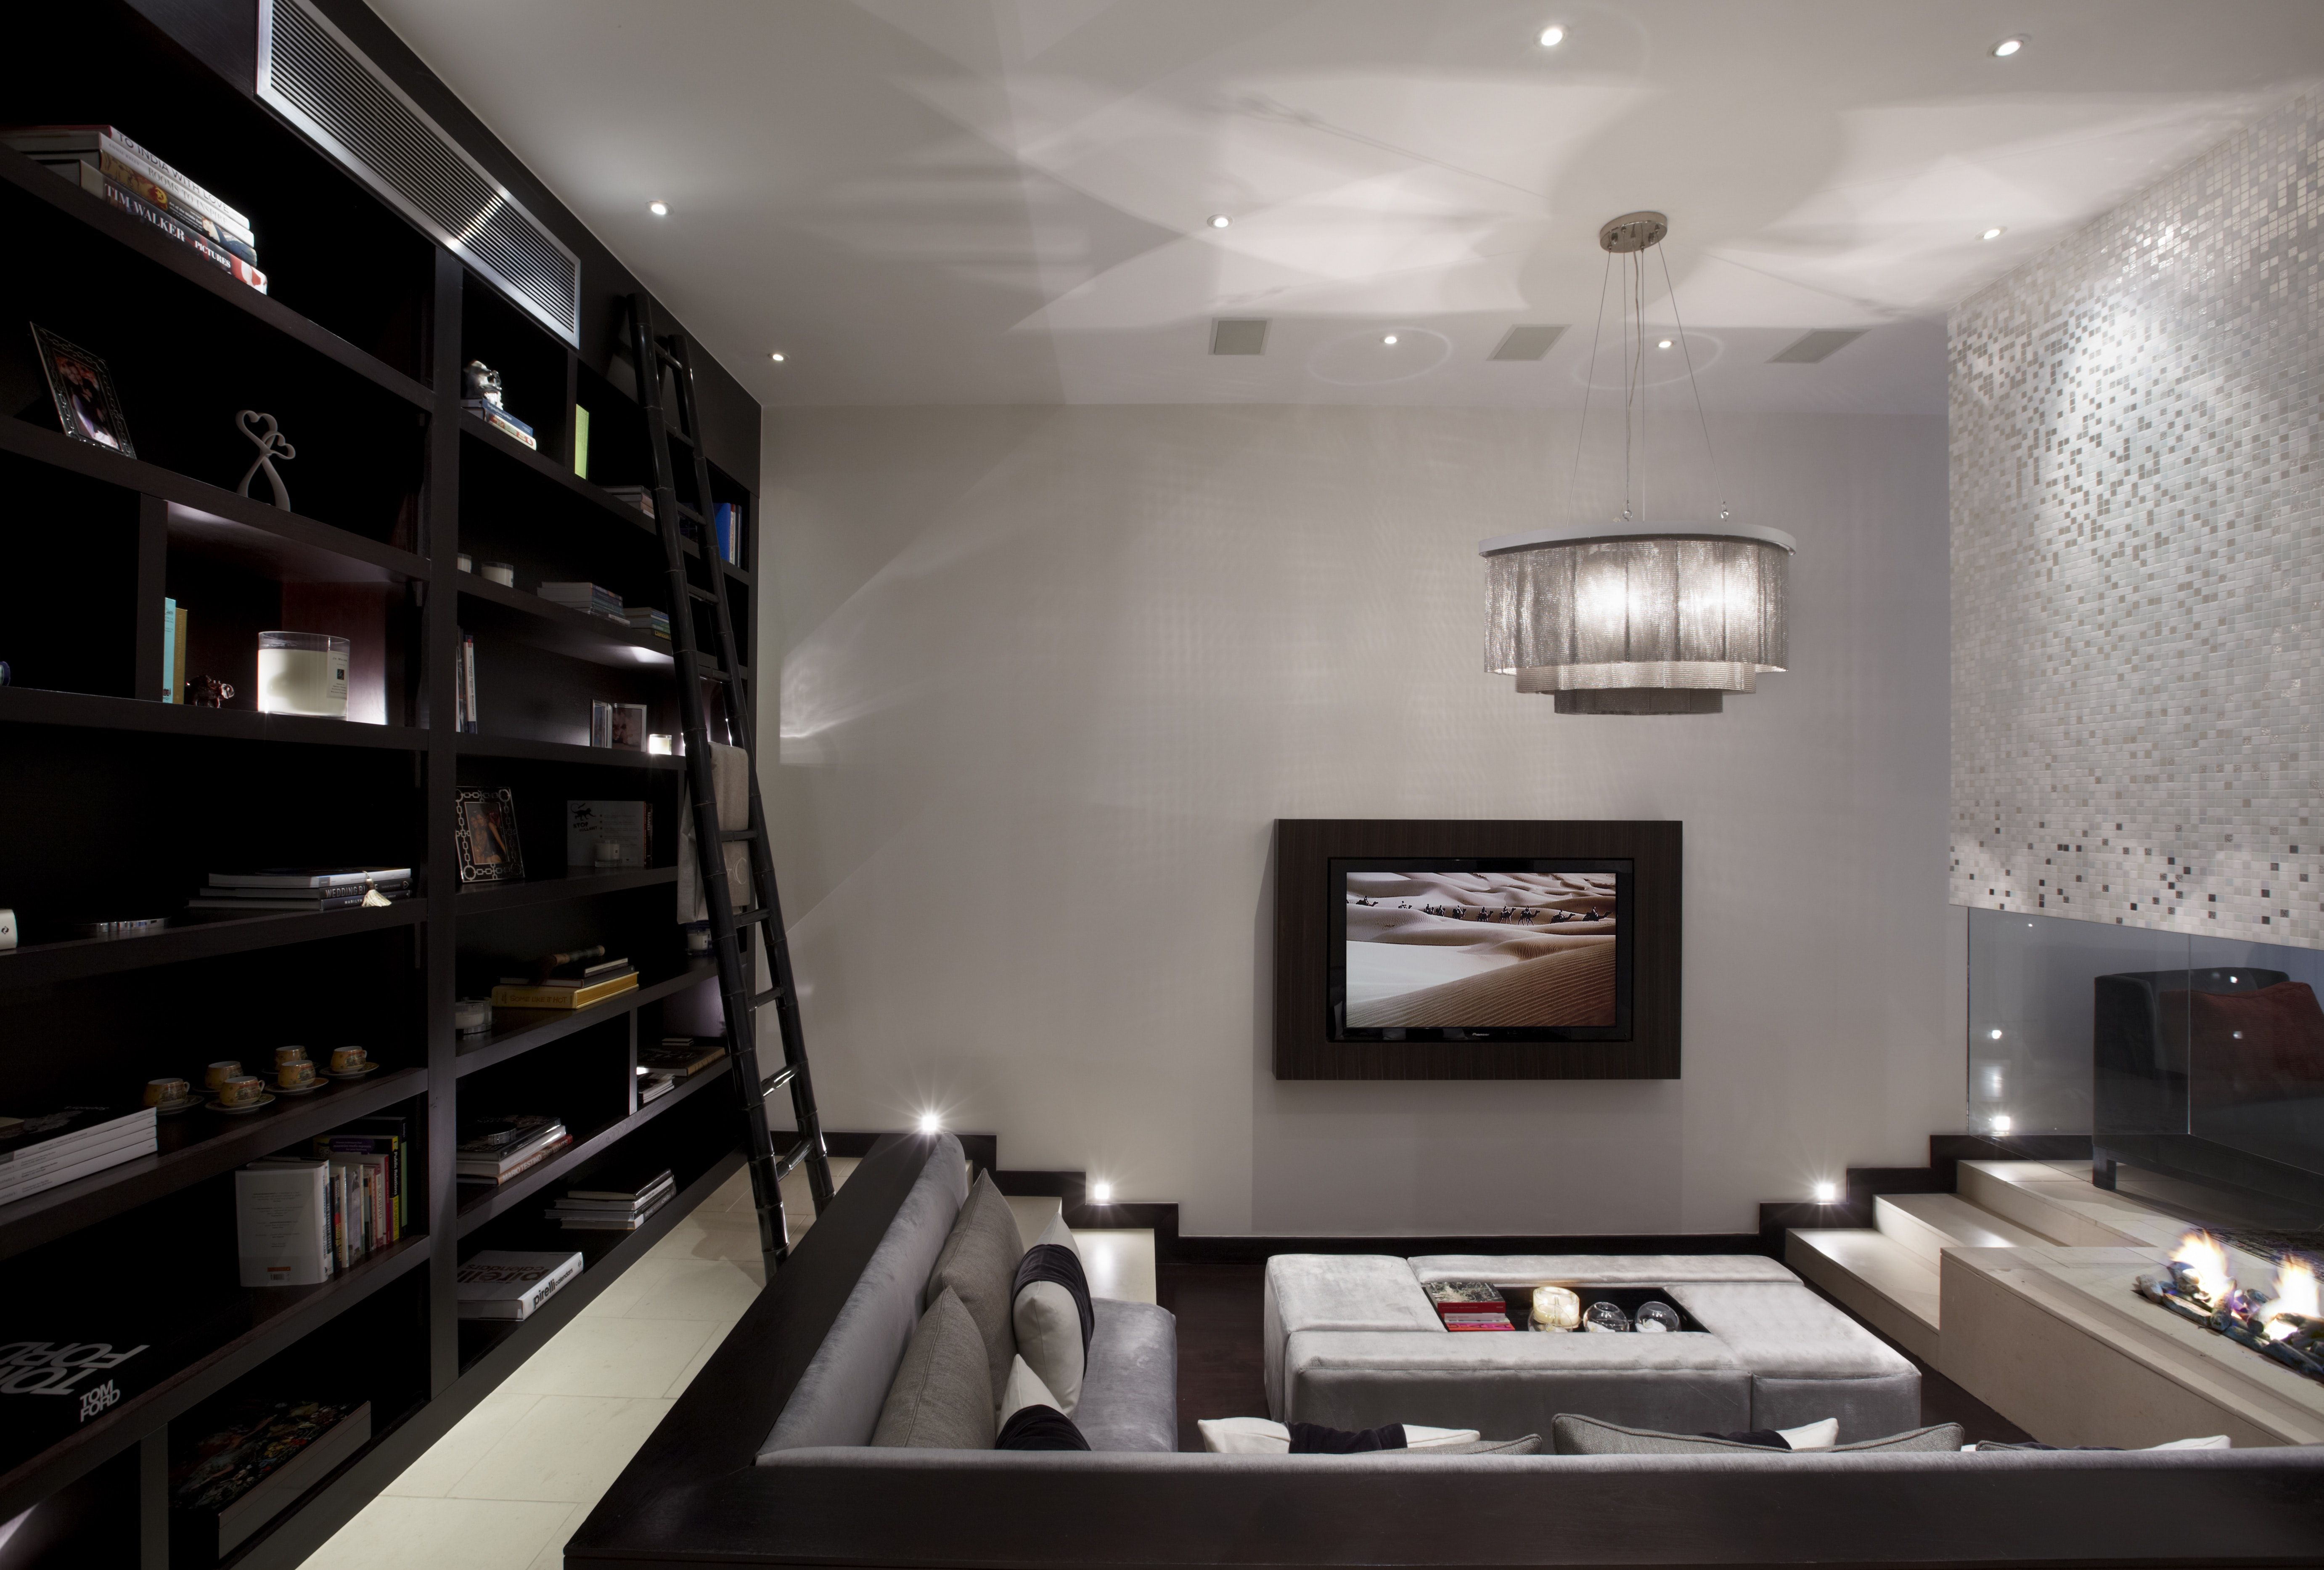 hyde park entertainment basement cellar pinterest basements rh pinterest com